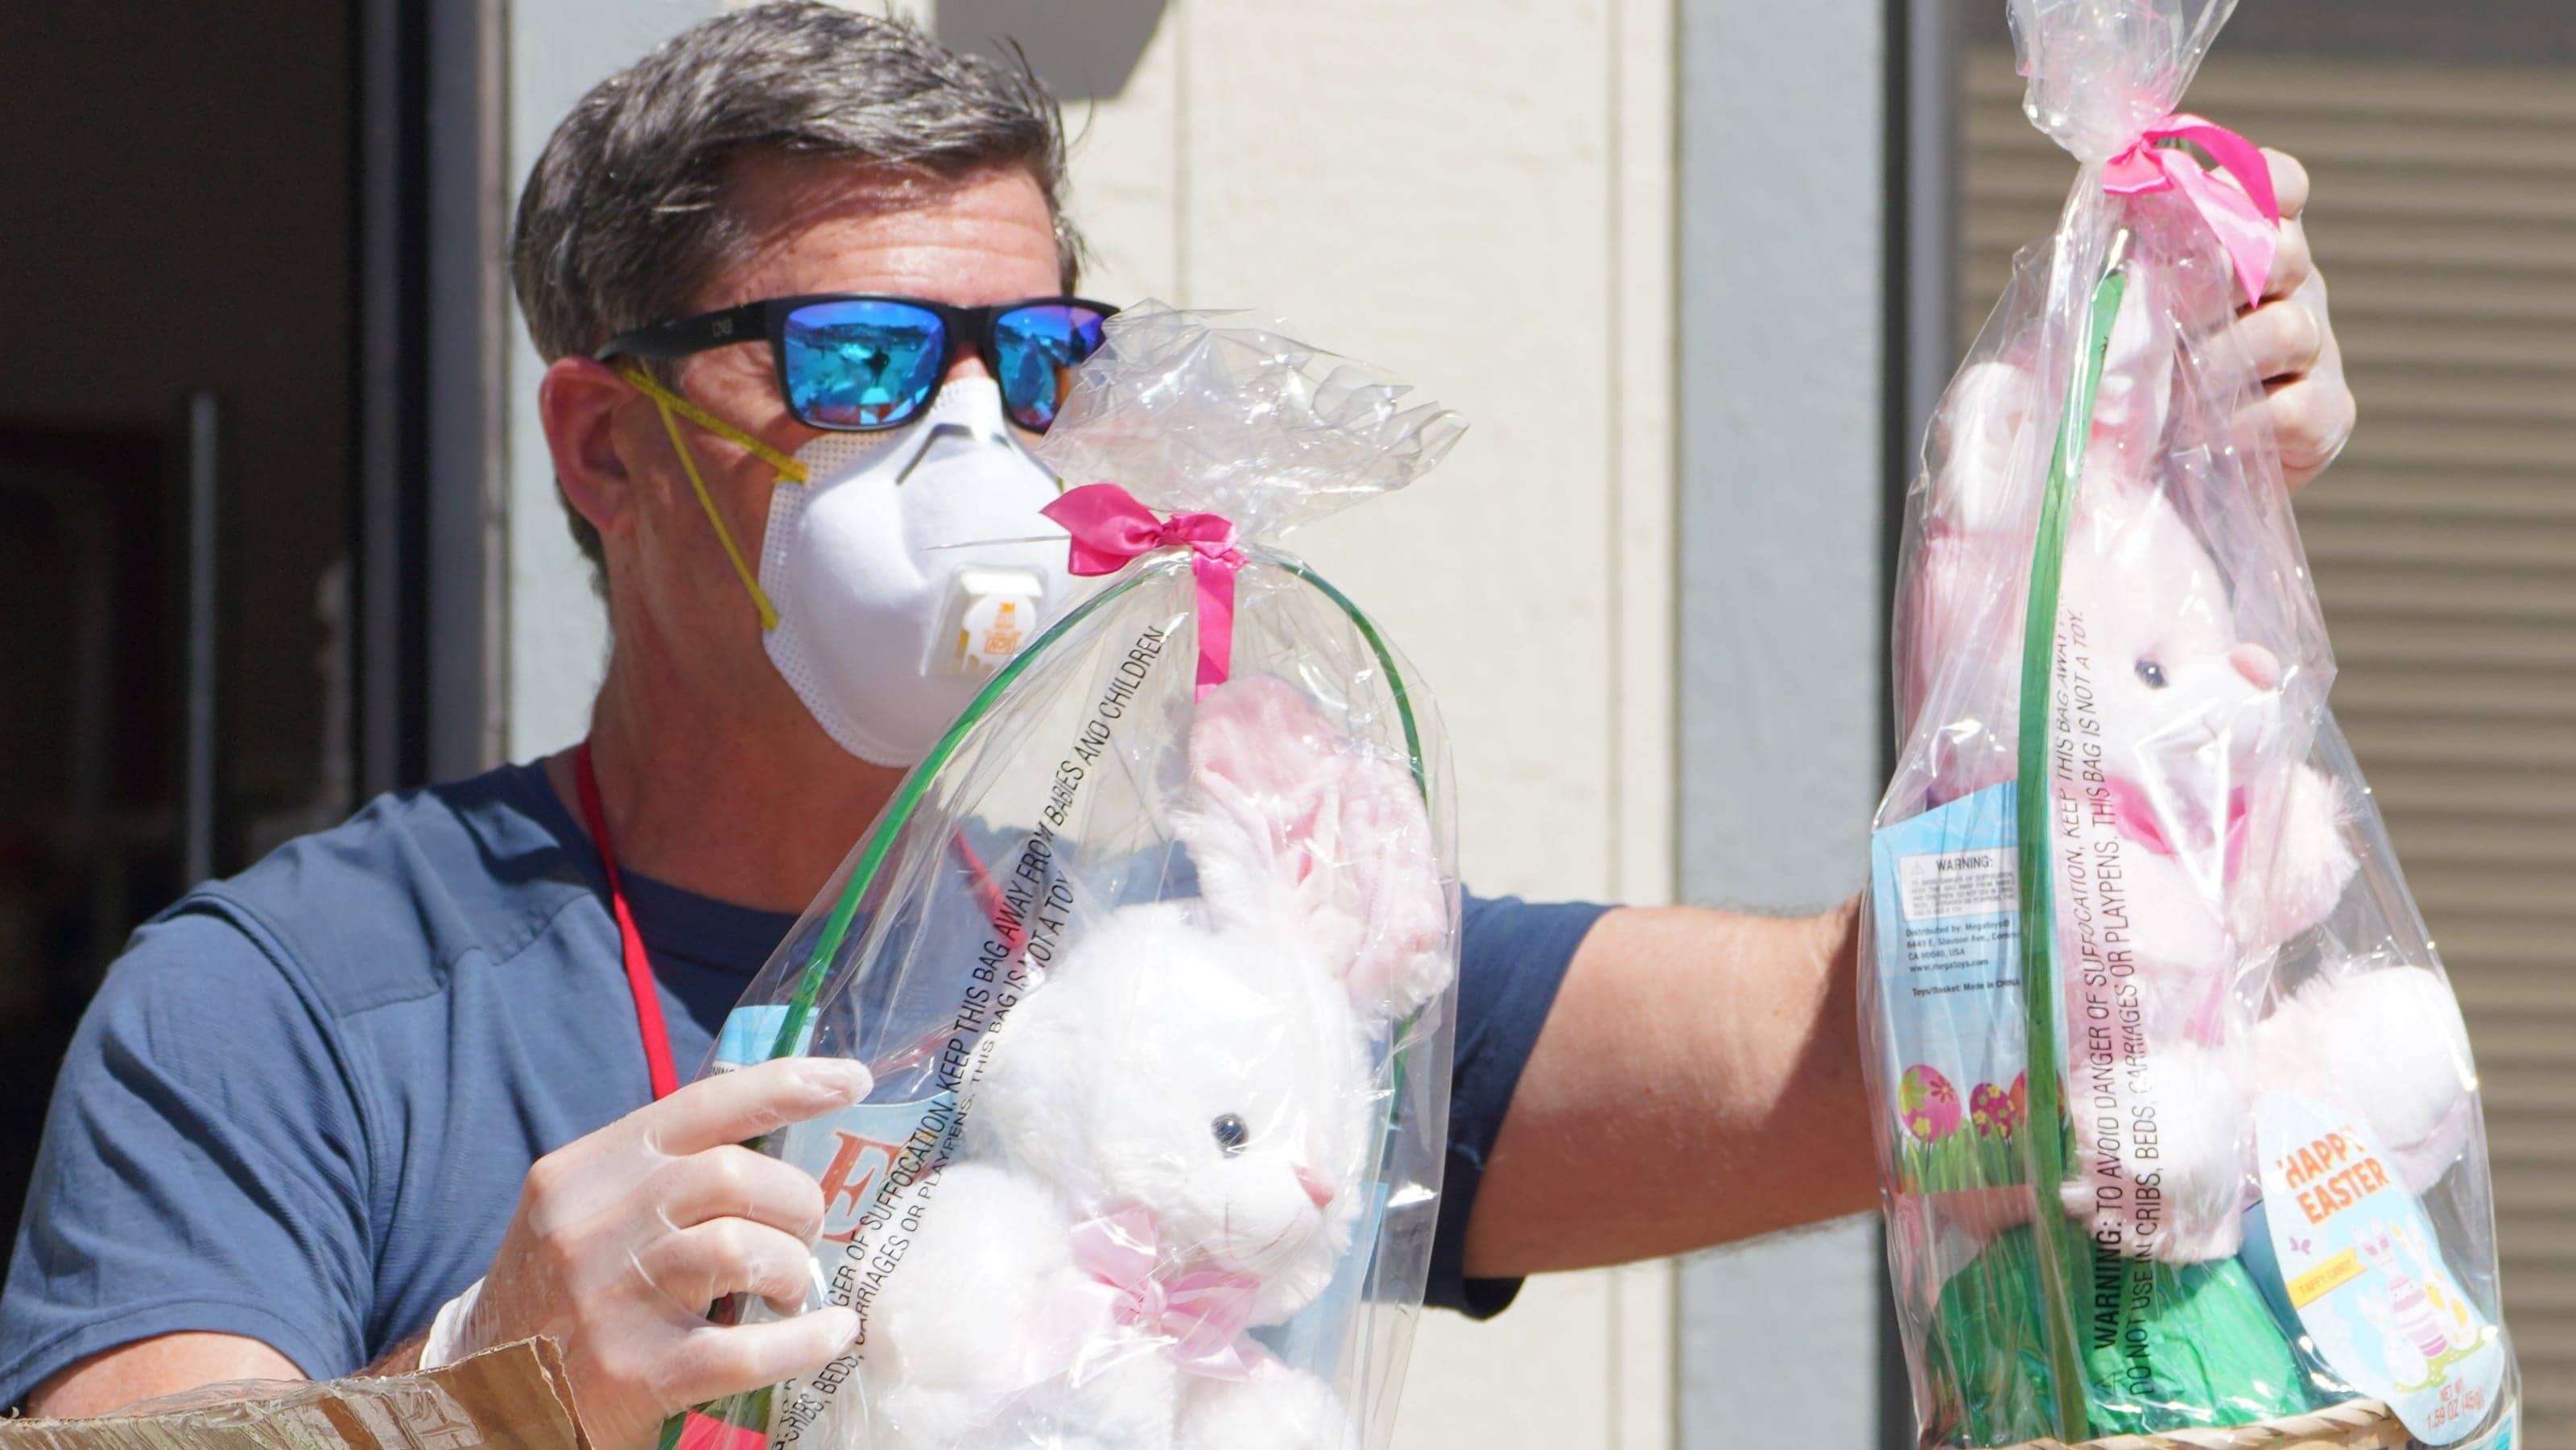 Where To Get Money During Pandemic And Unemployment on Easter?